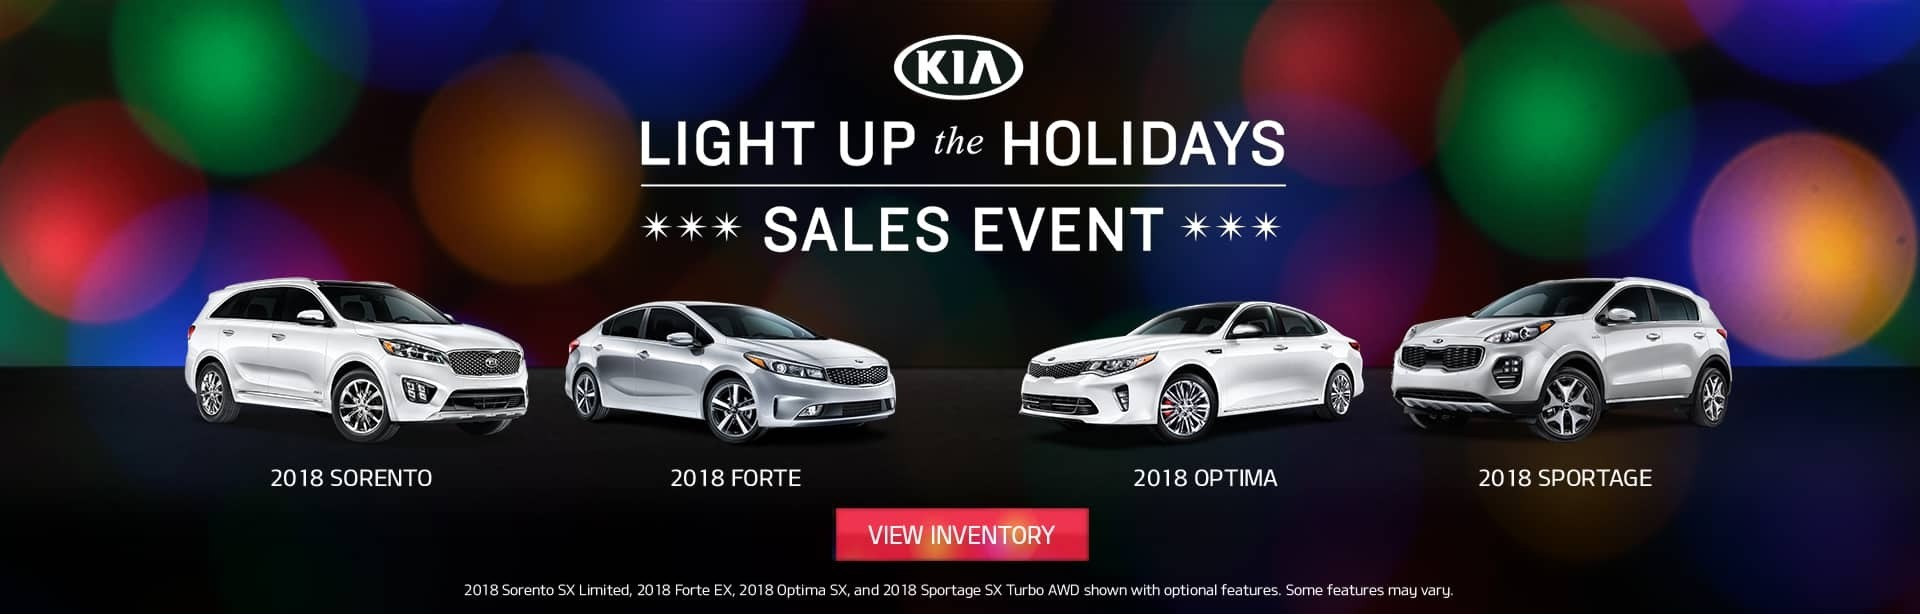 Kia_CYESE_LightUptheHolidays_ViewOffers_Static_1920x614.jpg